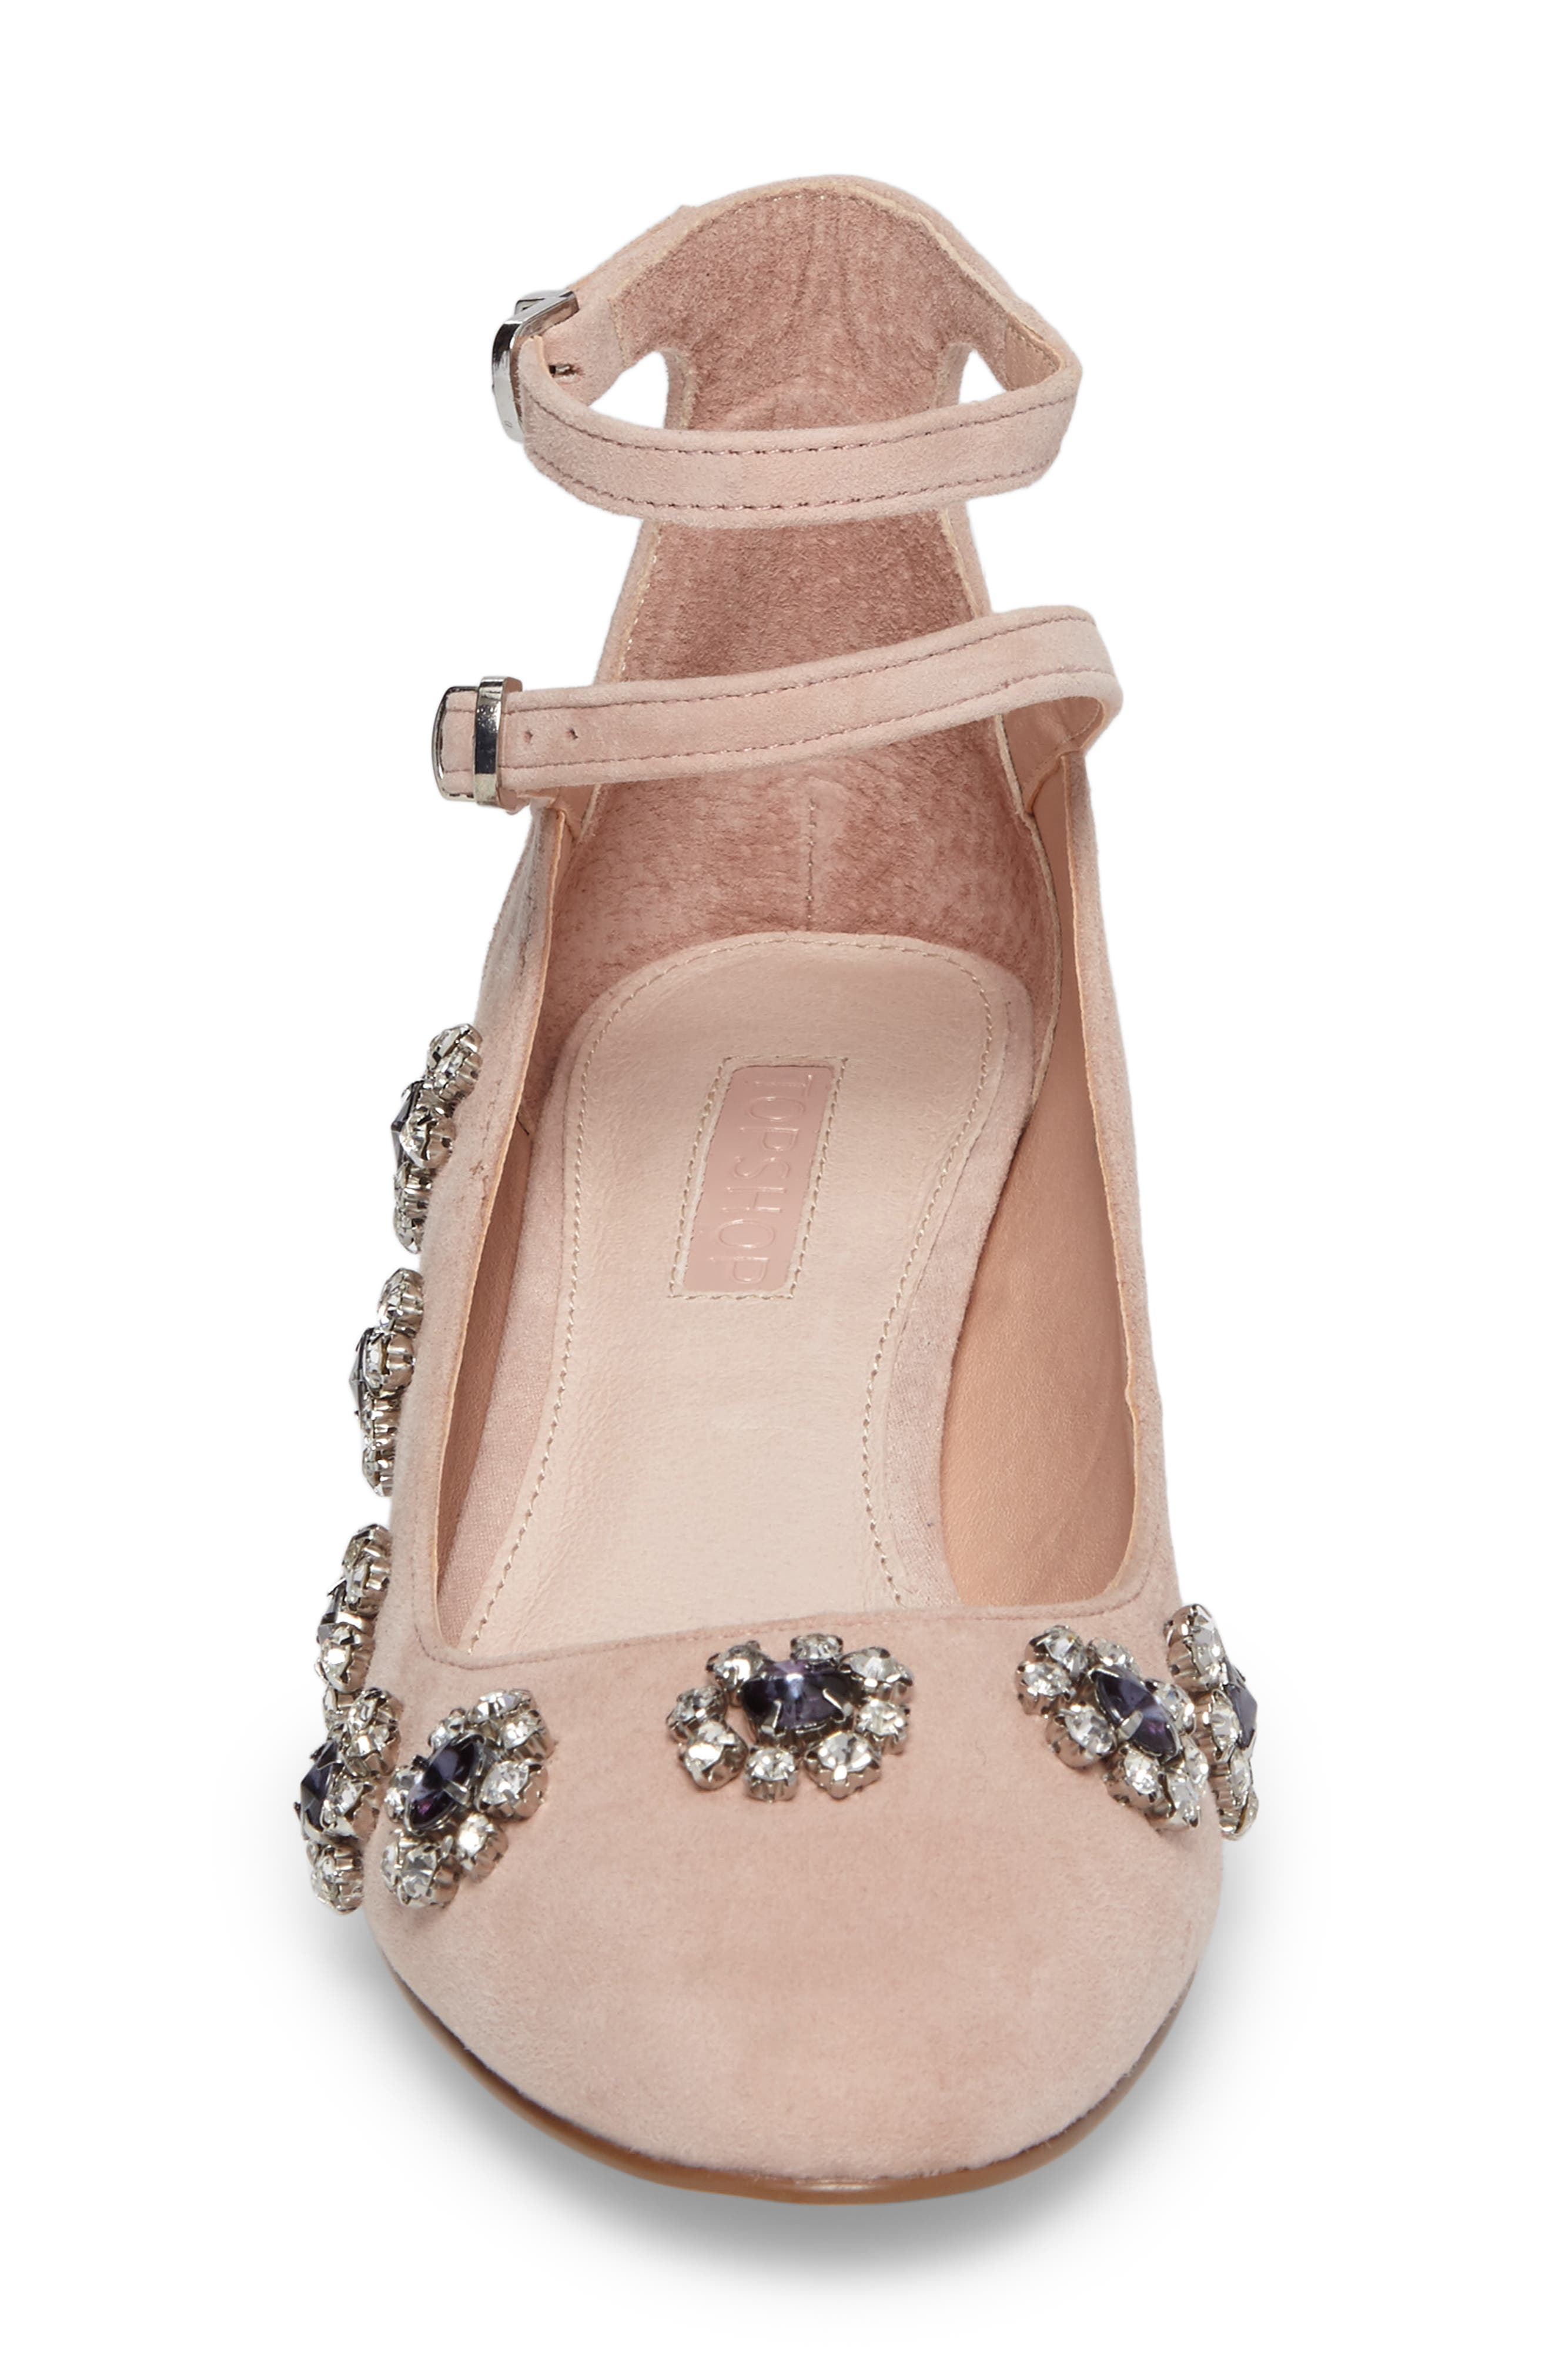 Jaida Crystal Embellished Pump,                             Alternate thumbnail 4, color,                             250